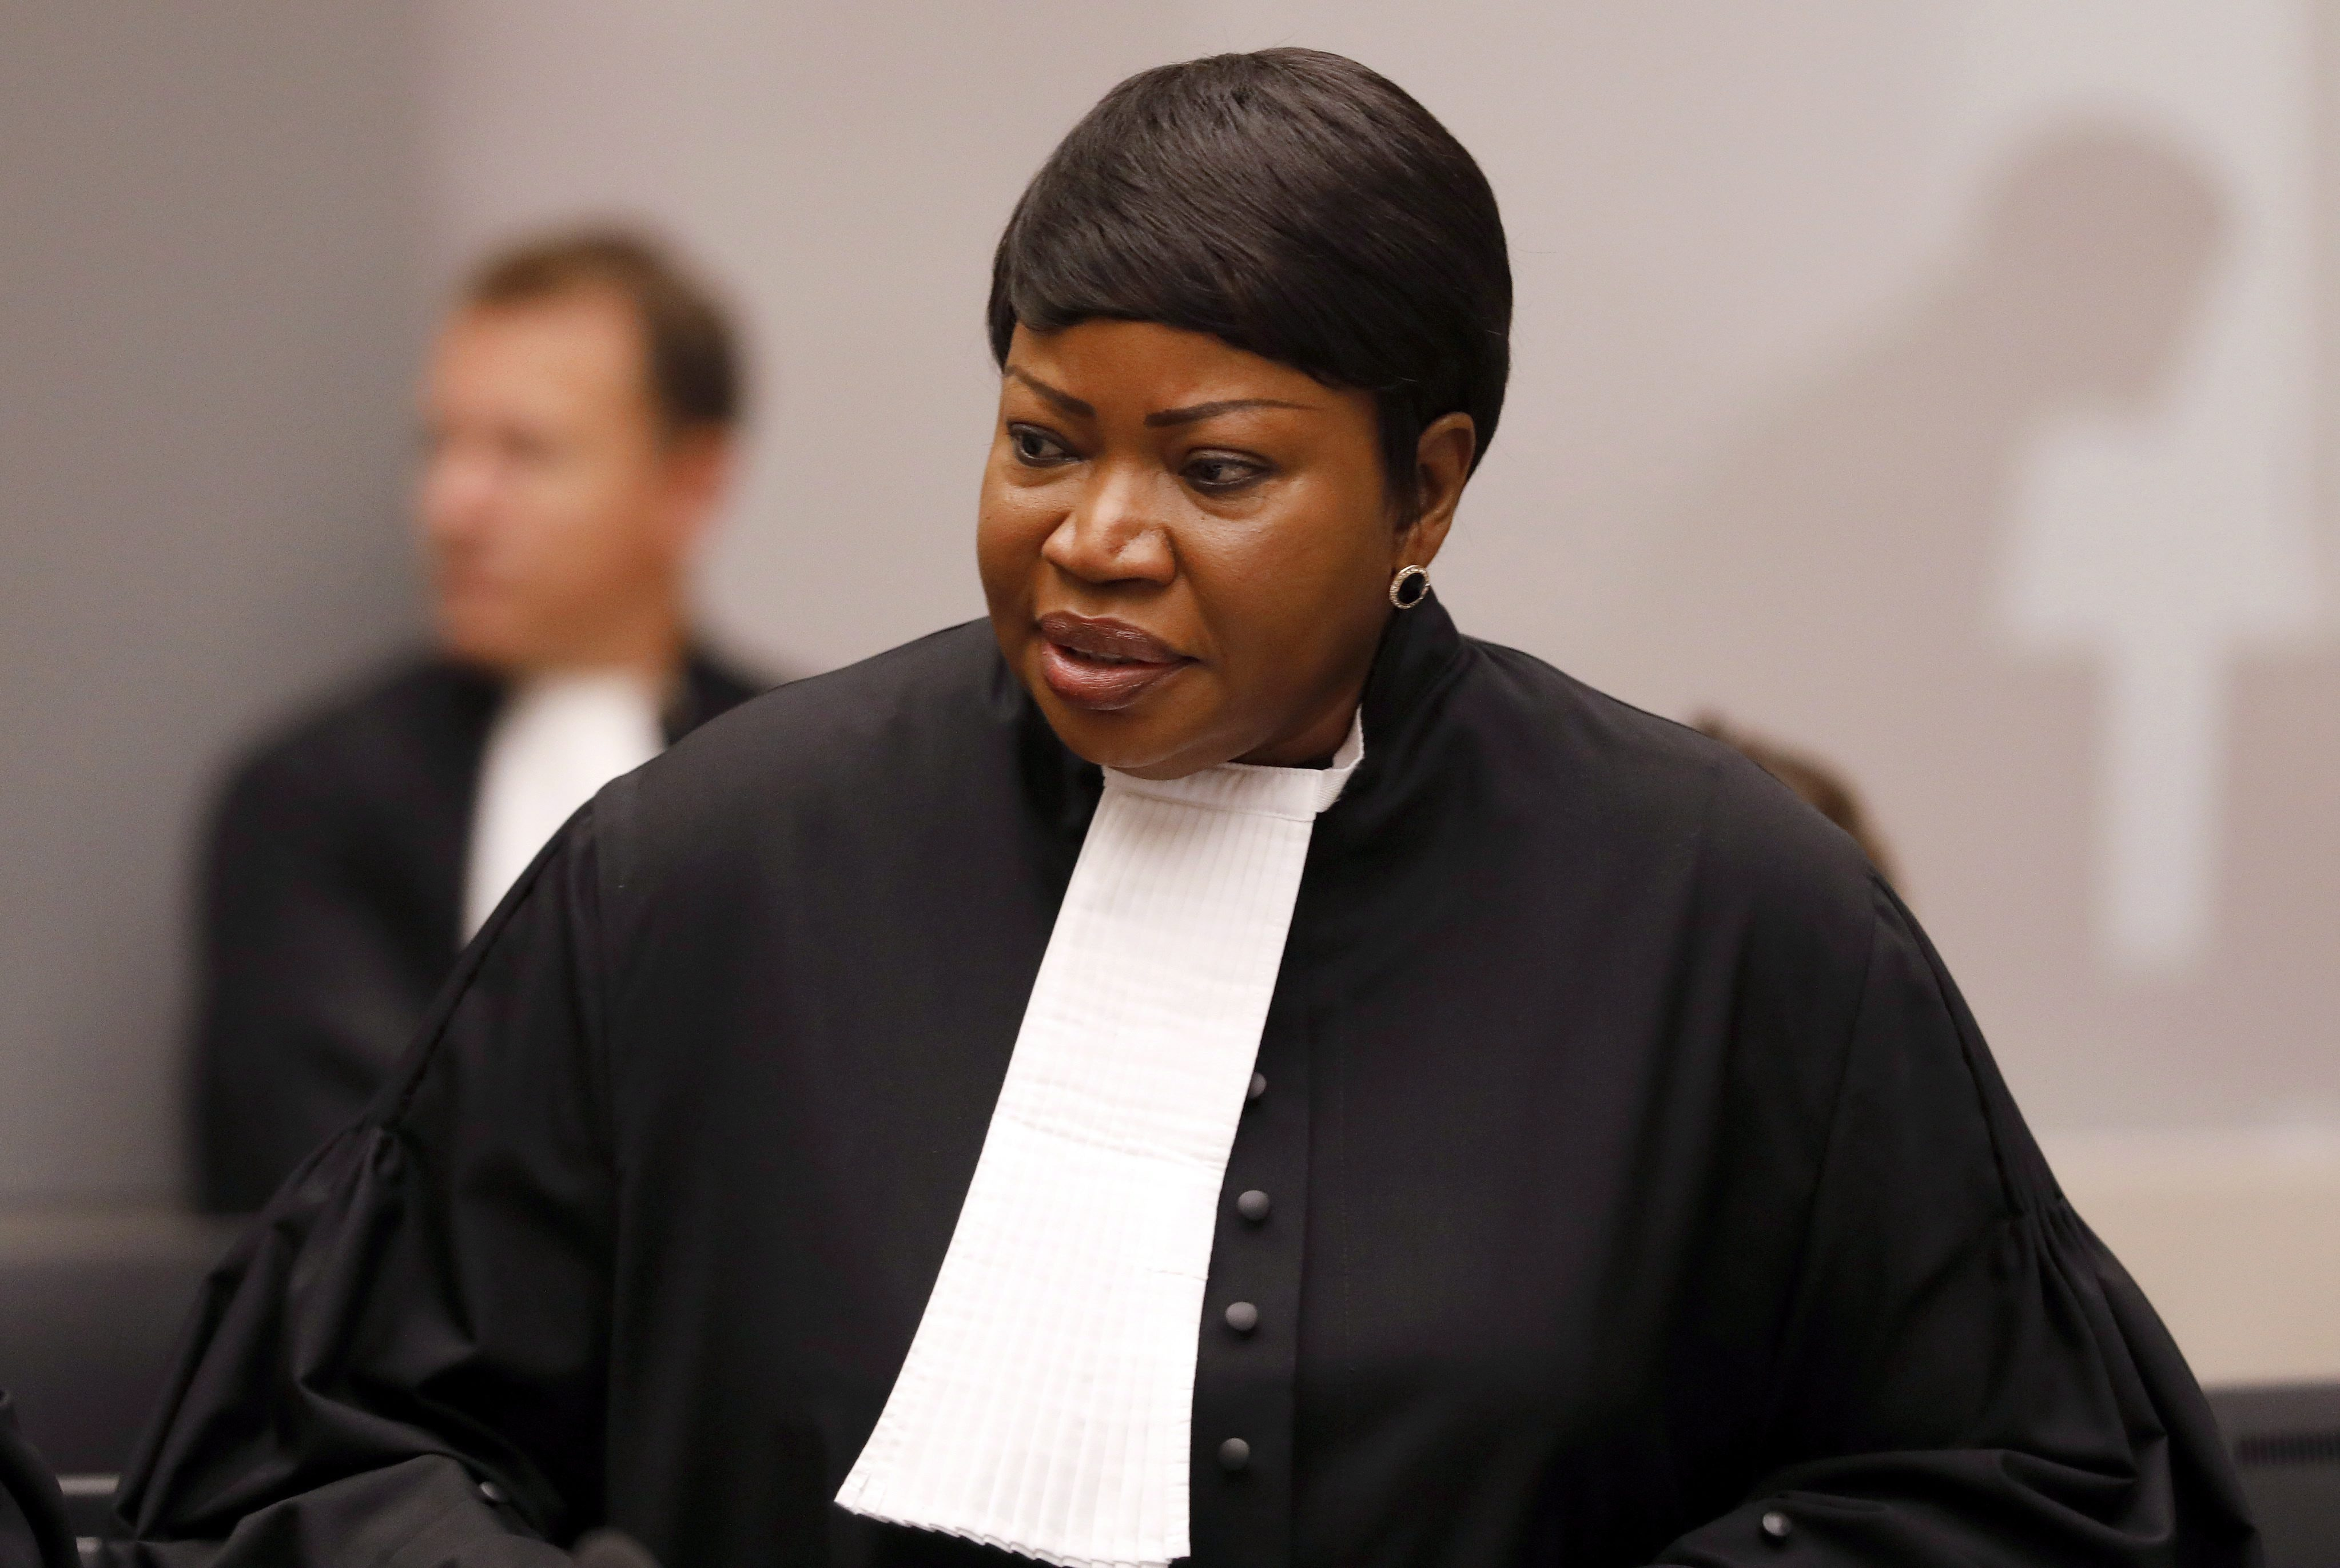 By not investigating the U.S. for war crimes, the International Criminal Court shows colonialism still thrives in international law